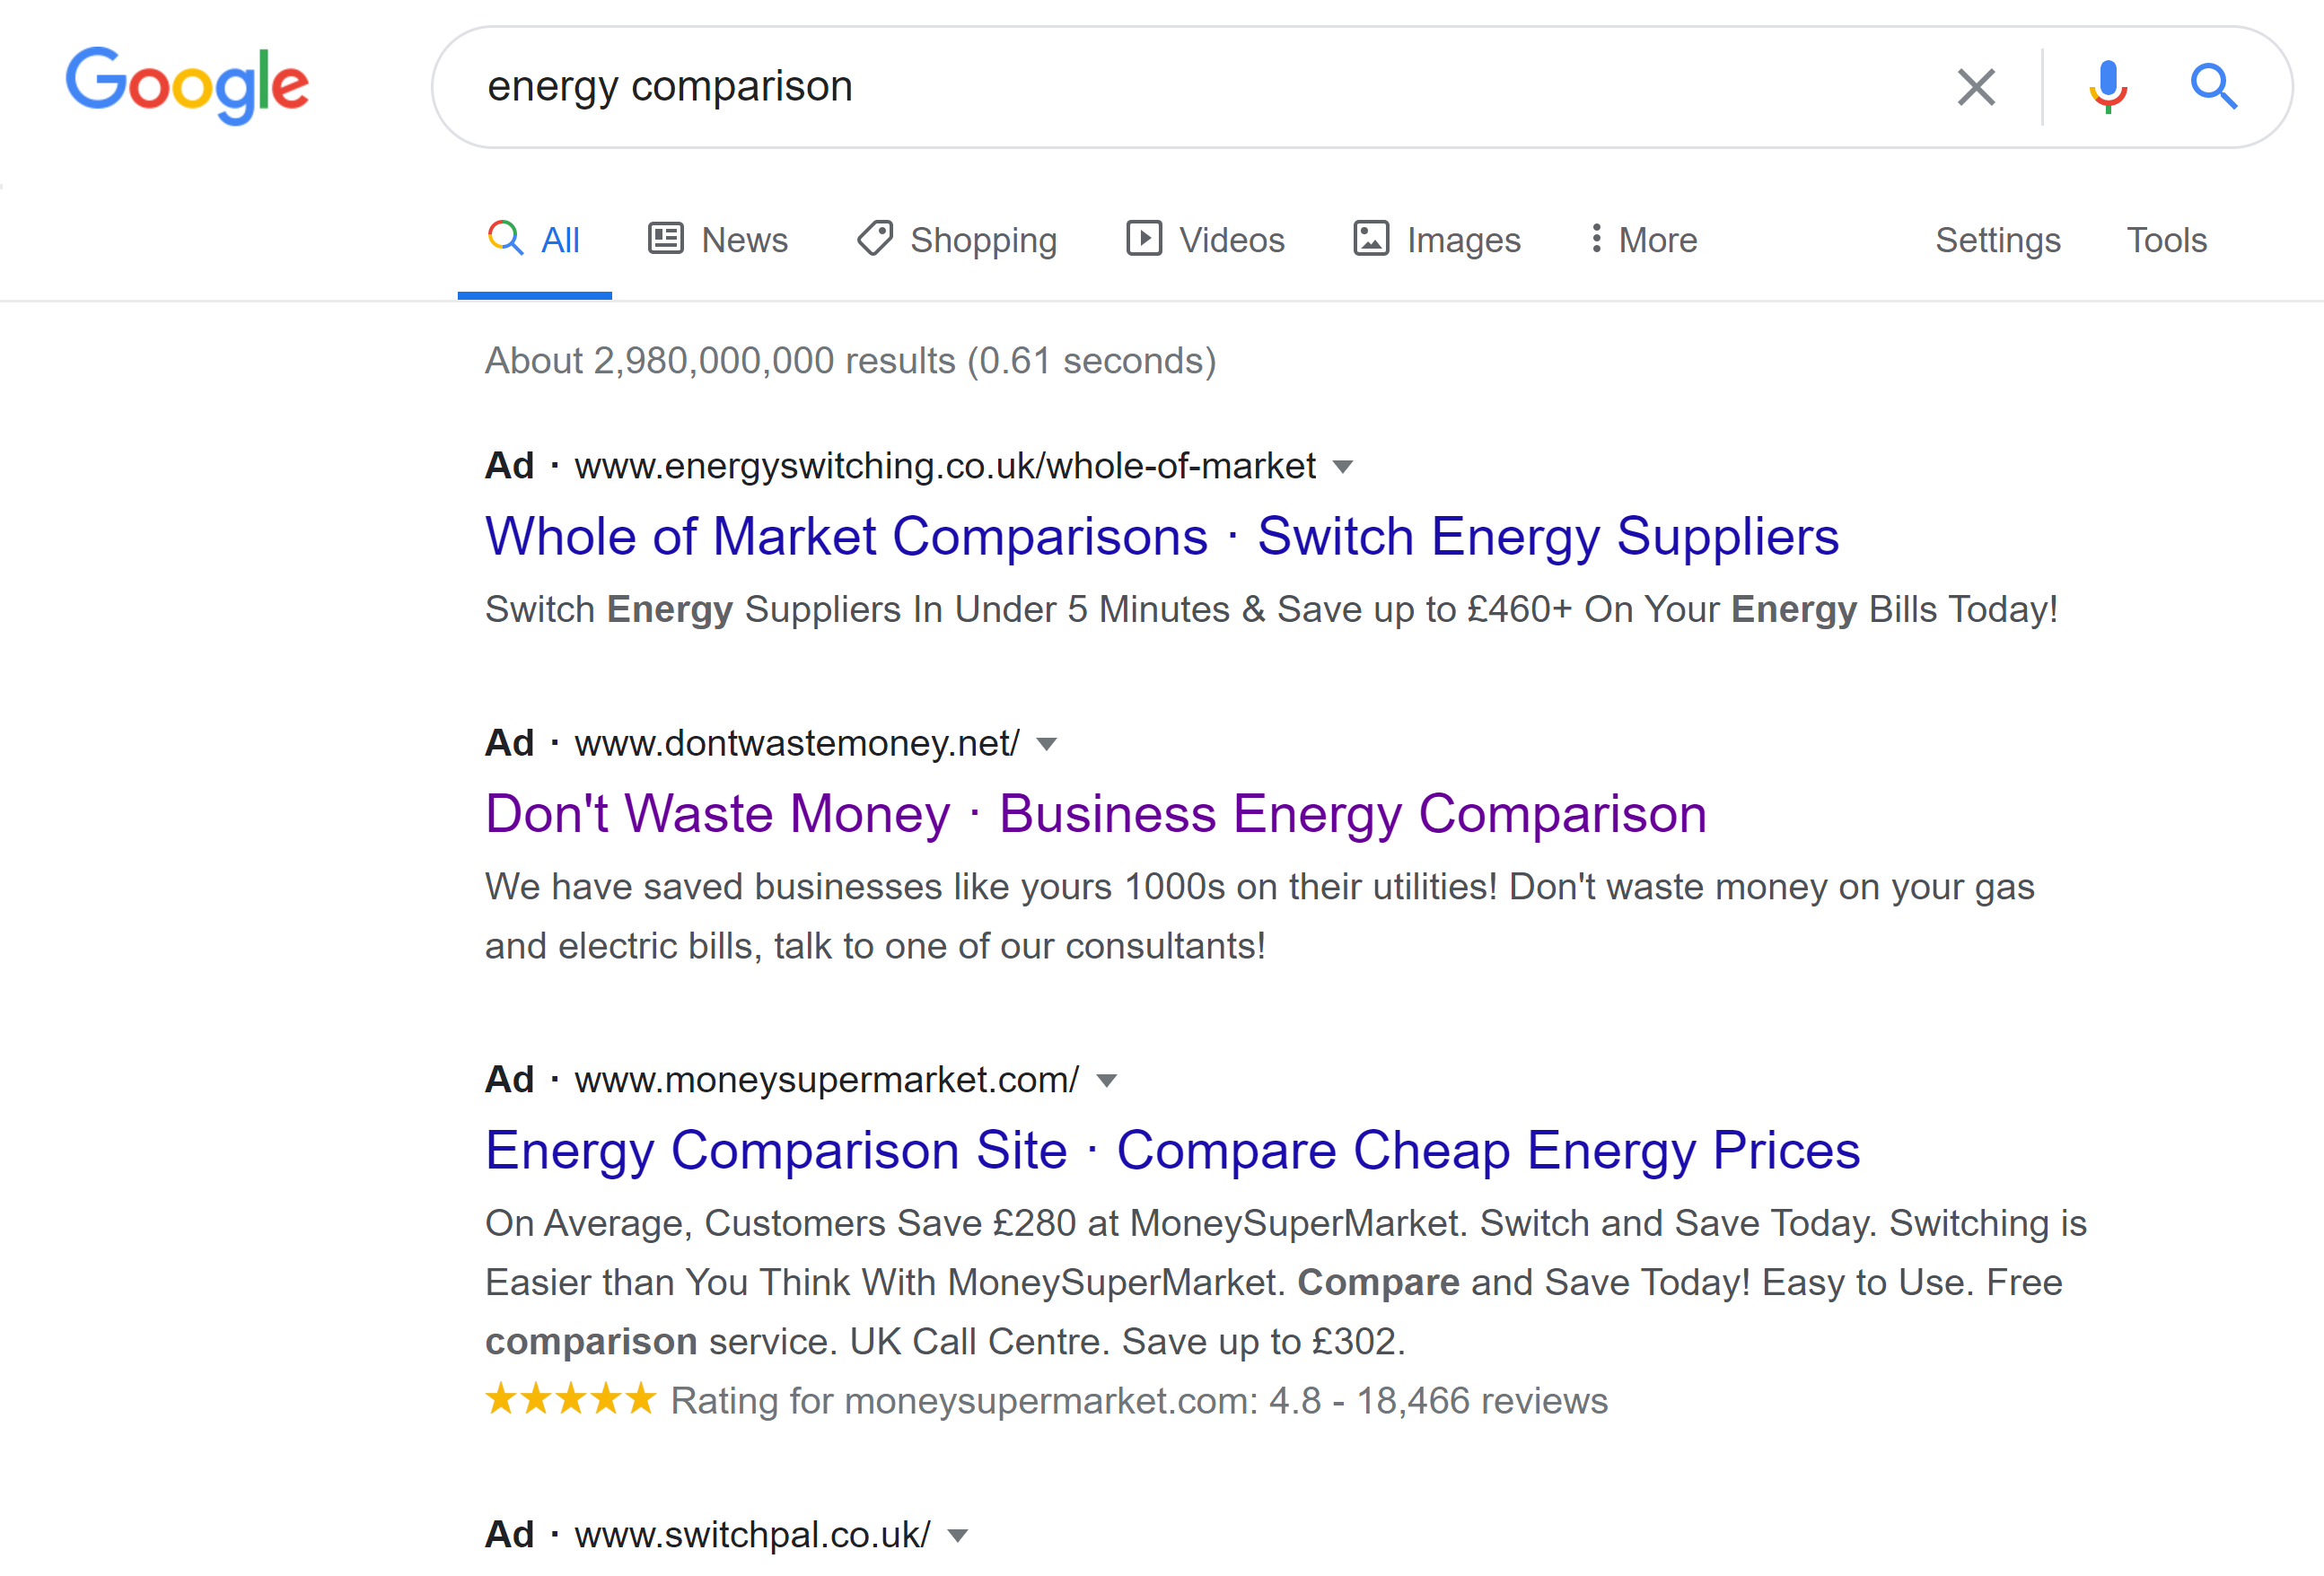 energy comparison Update   What have I been up to?